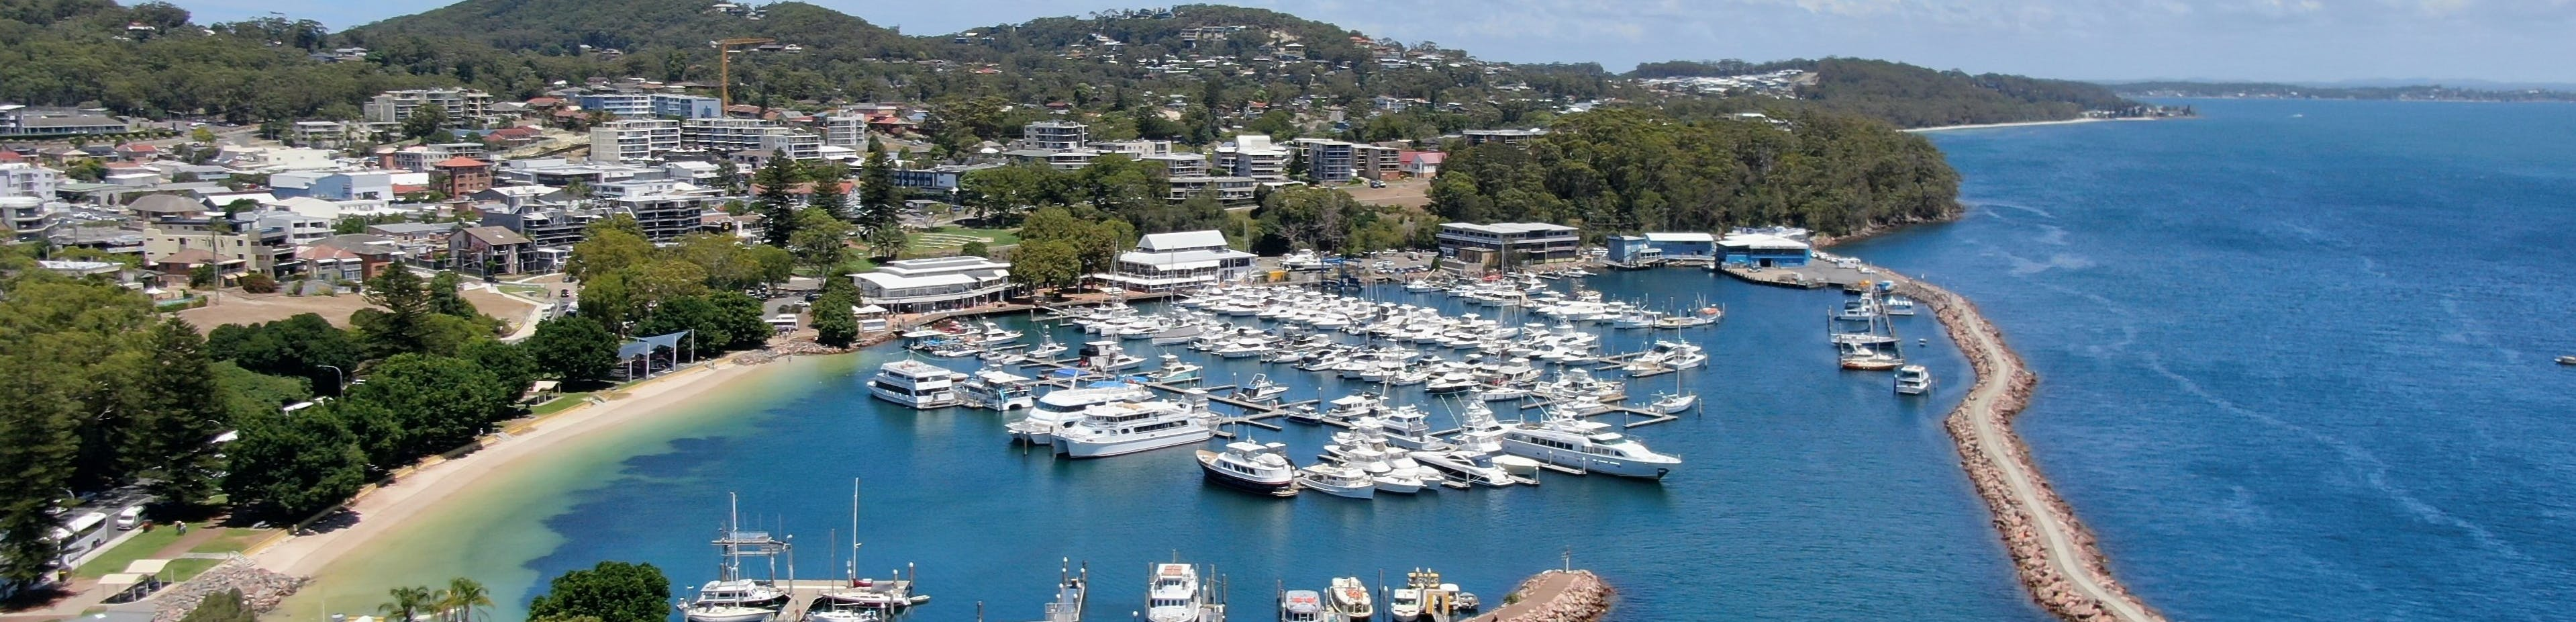 Drone footage of the Nelson Bay Marina